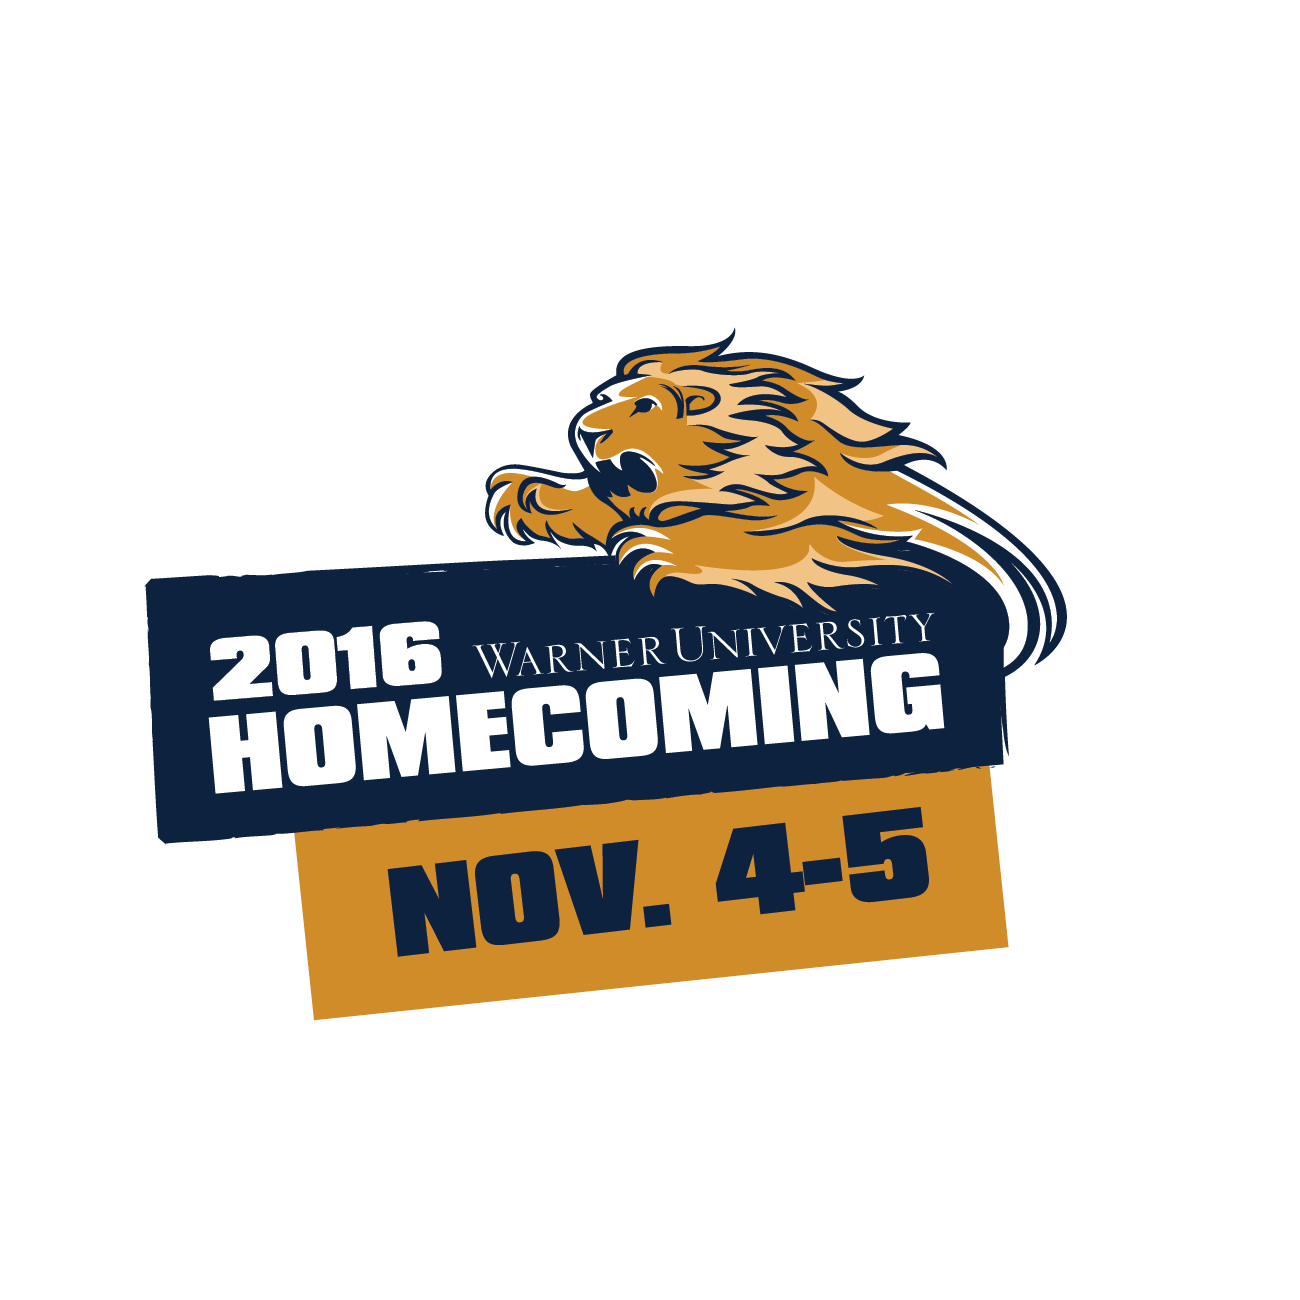 Top reasons to join. Crowd clipart alumnus homecoming